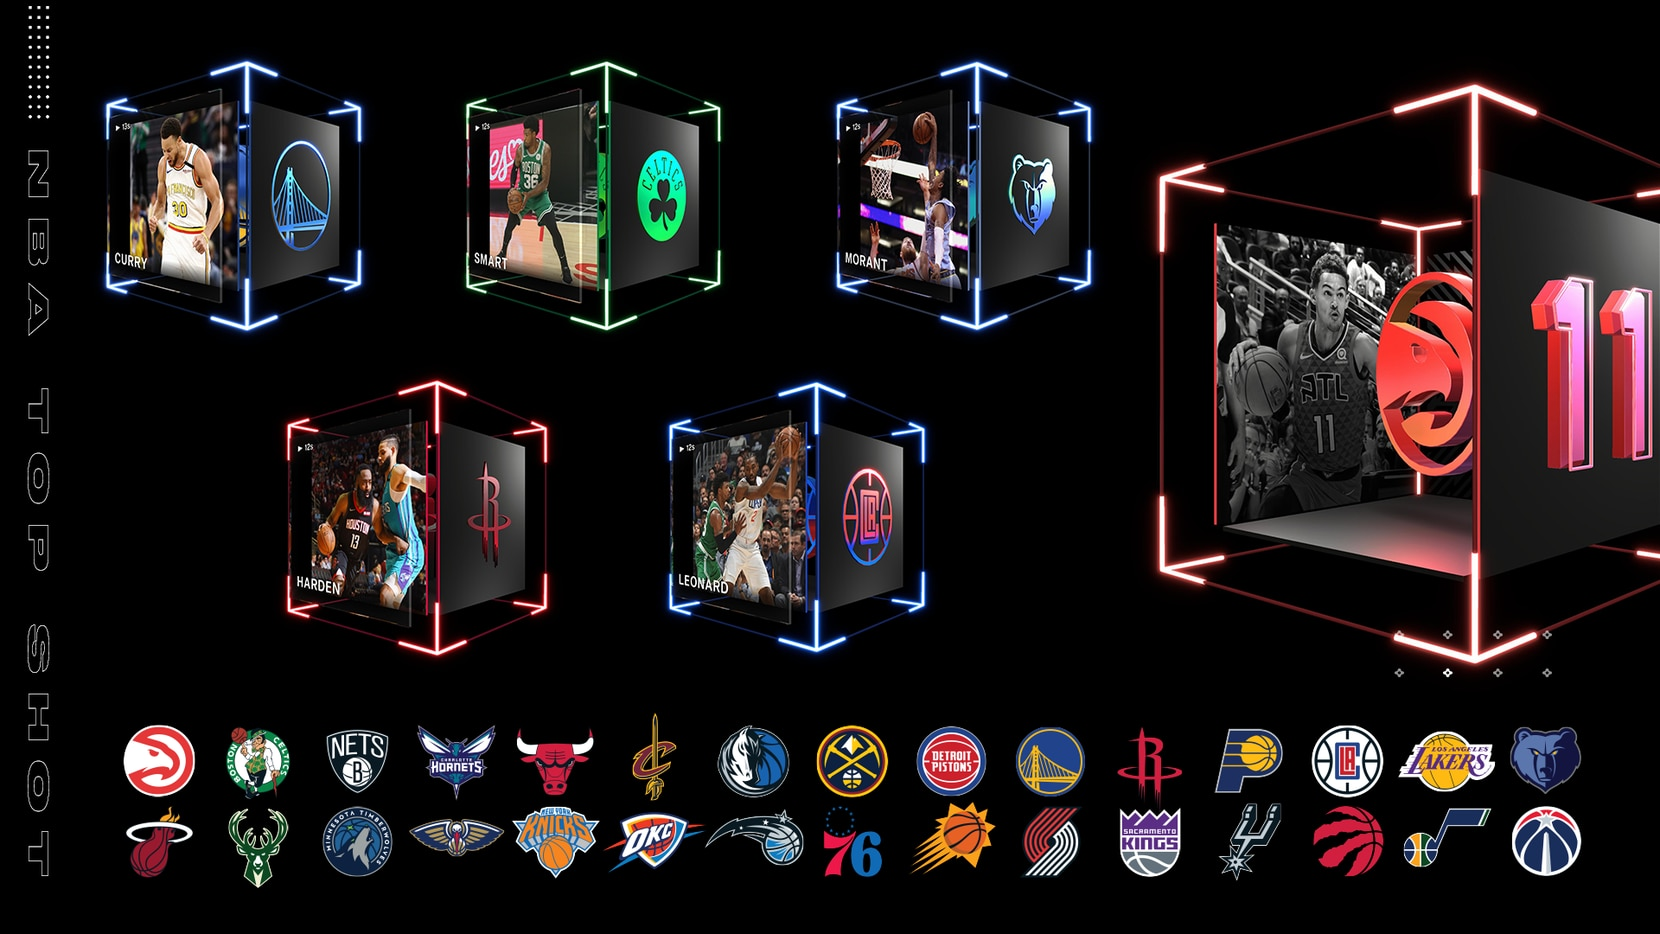 """NBA Top Shot is the latest — and most digitally nuanced — sports collectibles craze. Top Shot video """"moments"""" have skyrocketed in popularity and are viewed as a tech-savvy alternative to physical trading cards."""